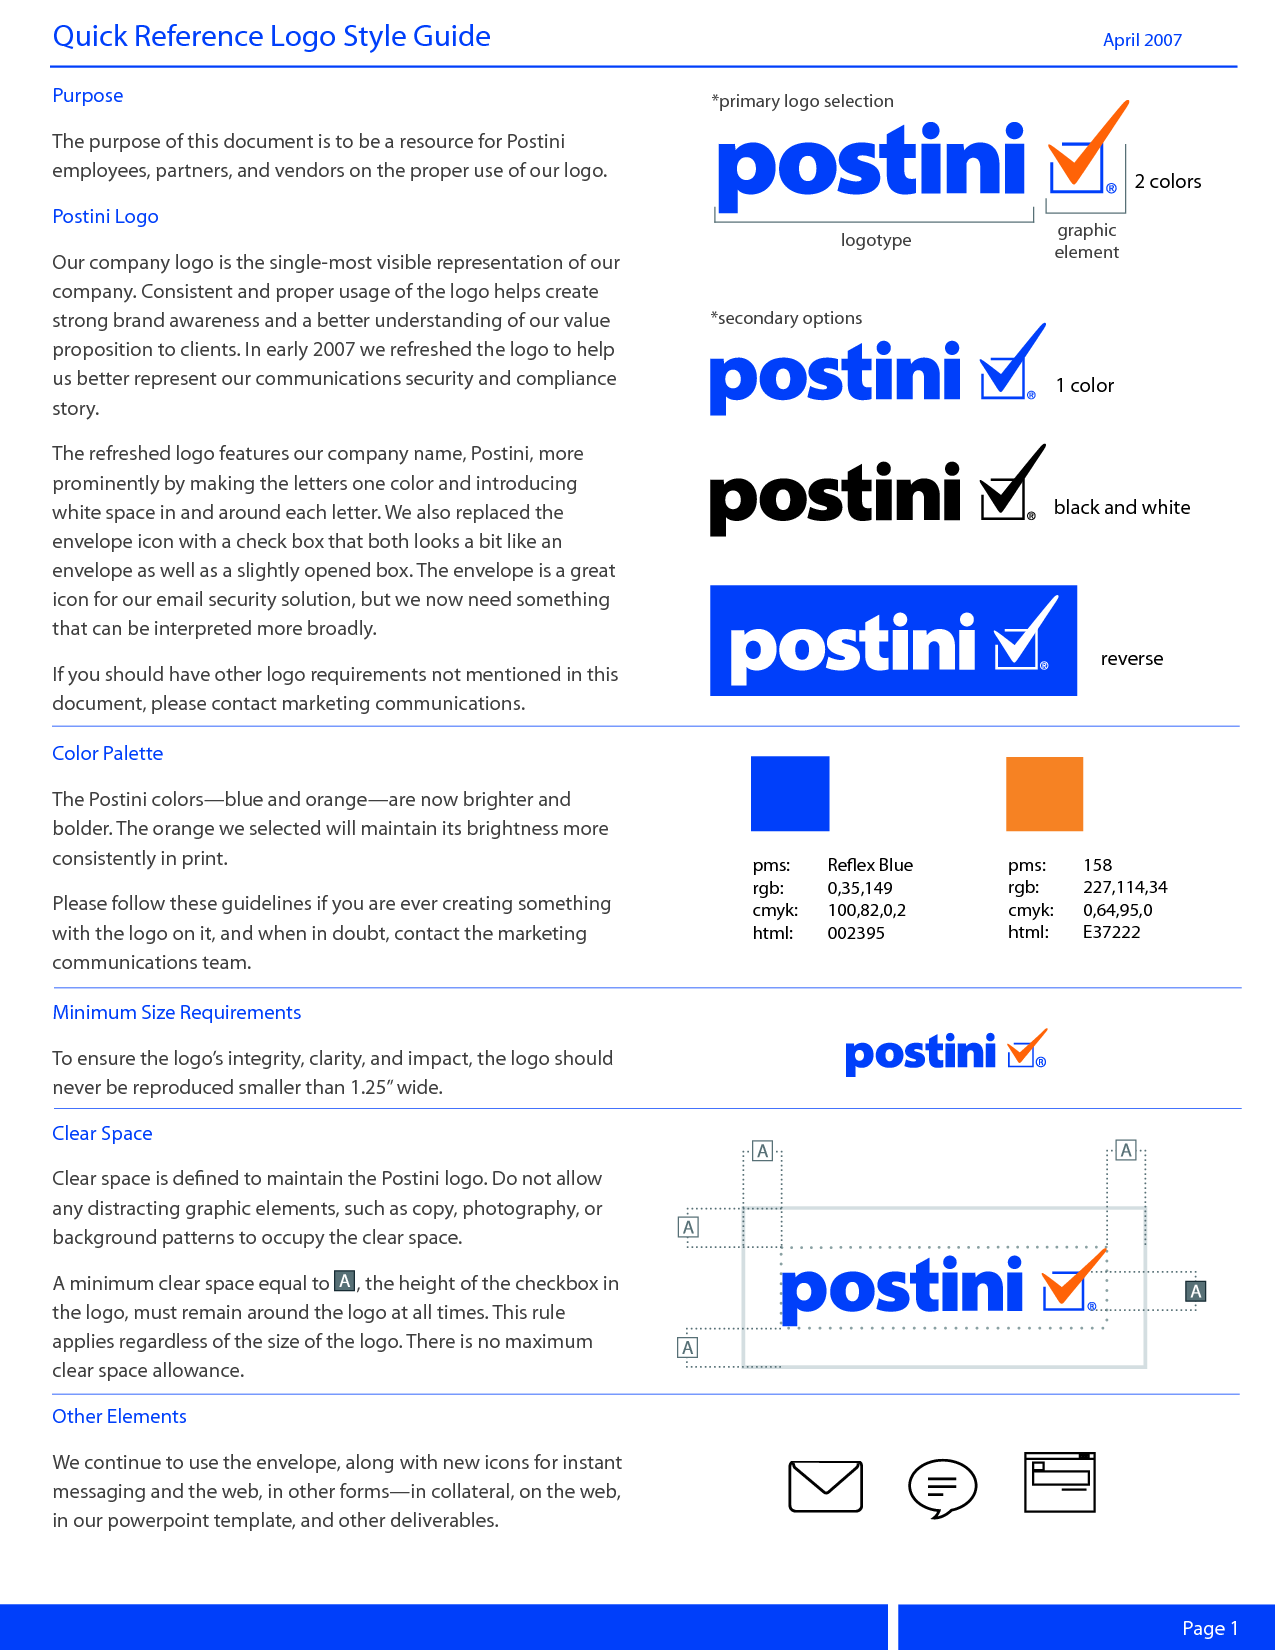 logo style guide template - Google Search